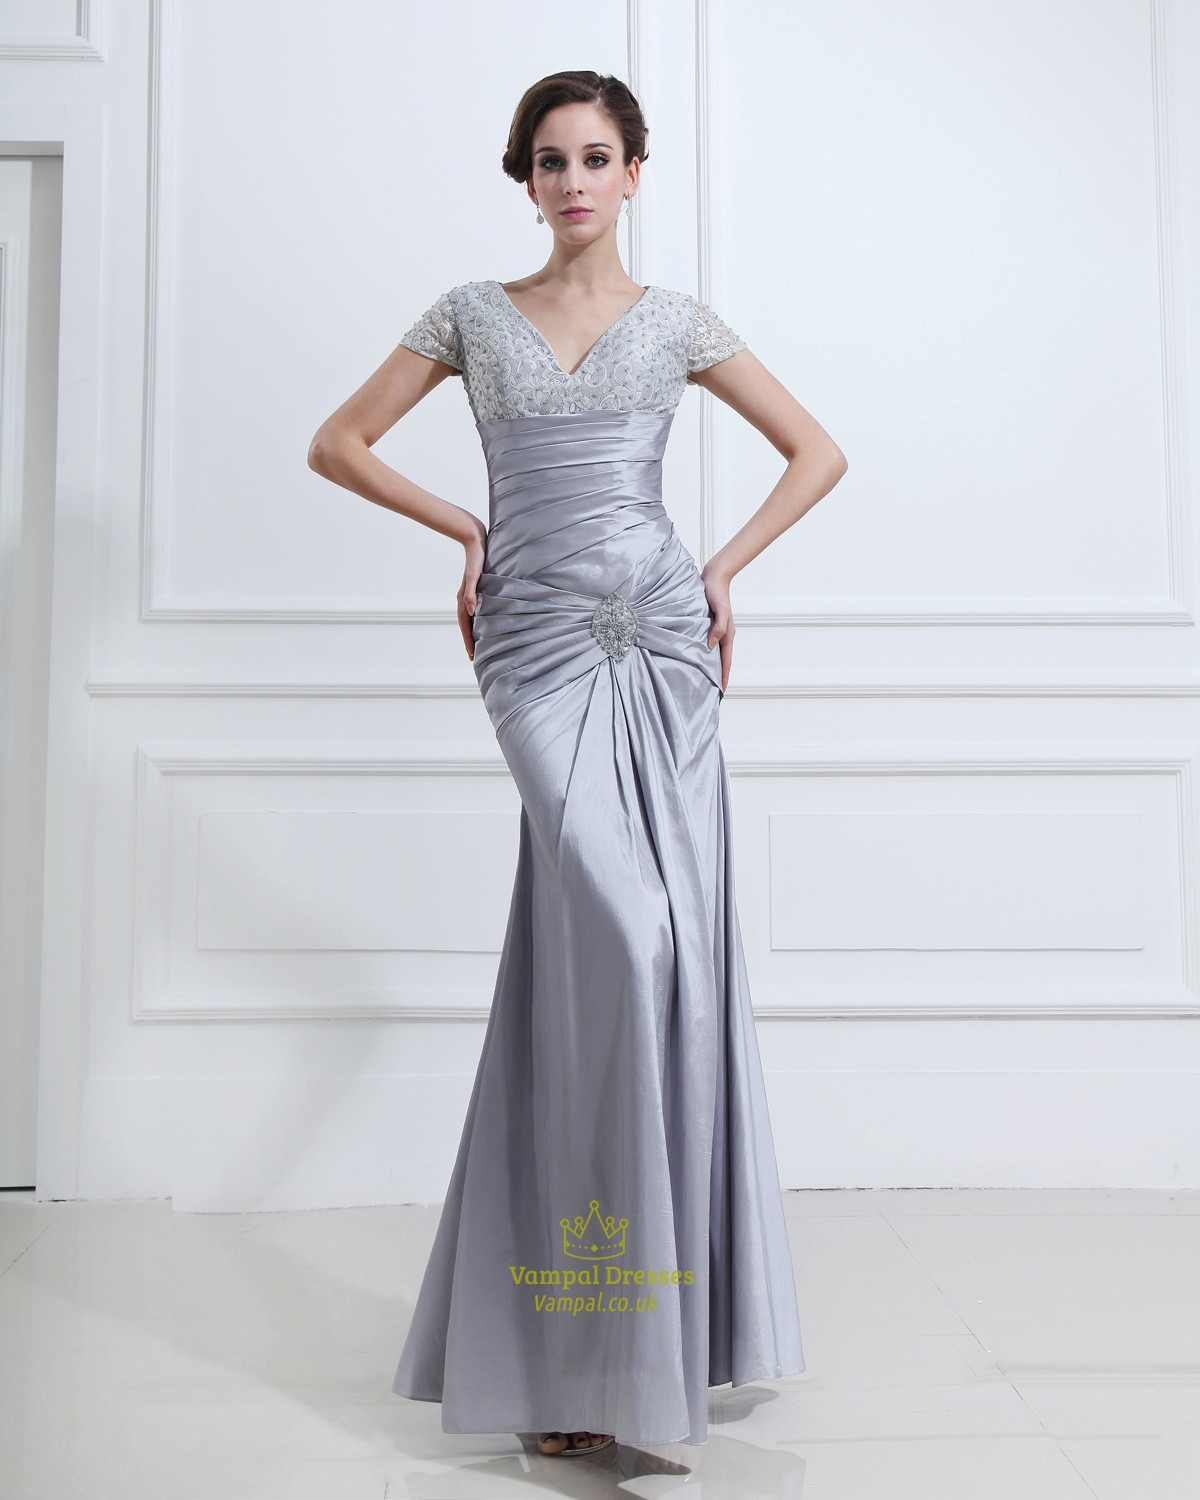 silver formal dresses for women images - dresses design ideas